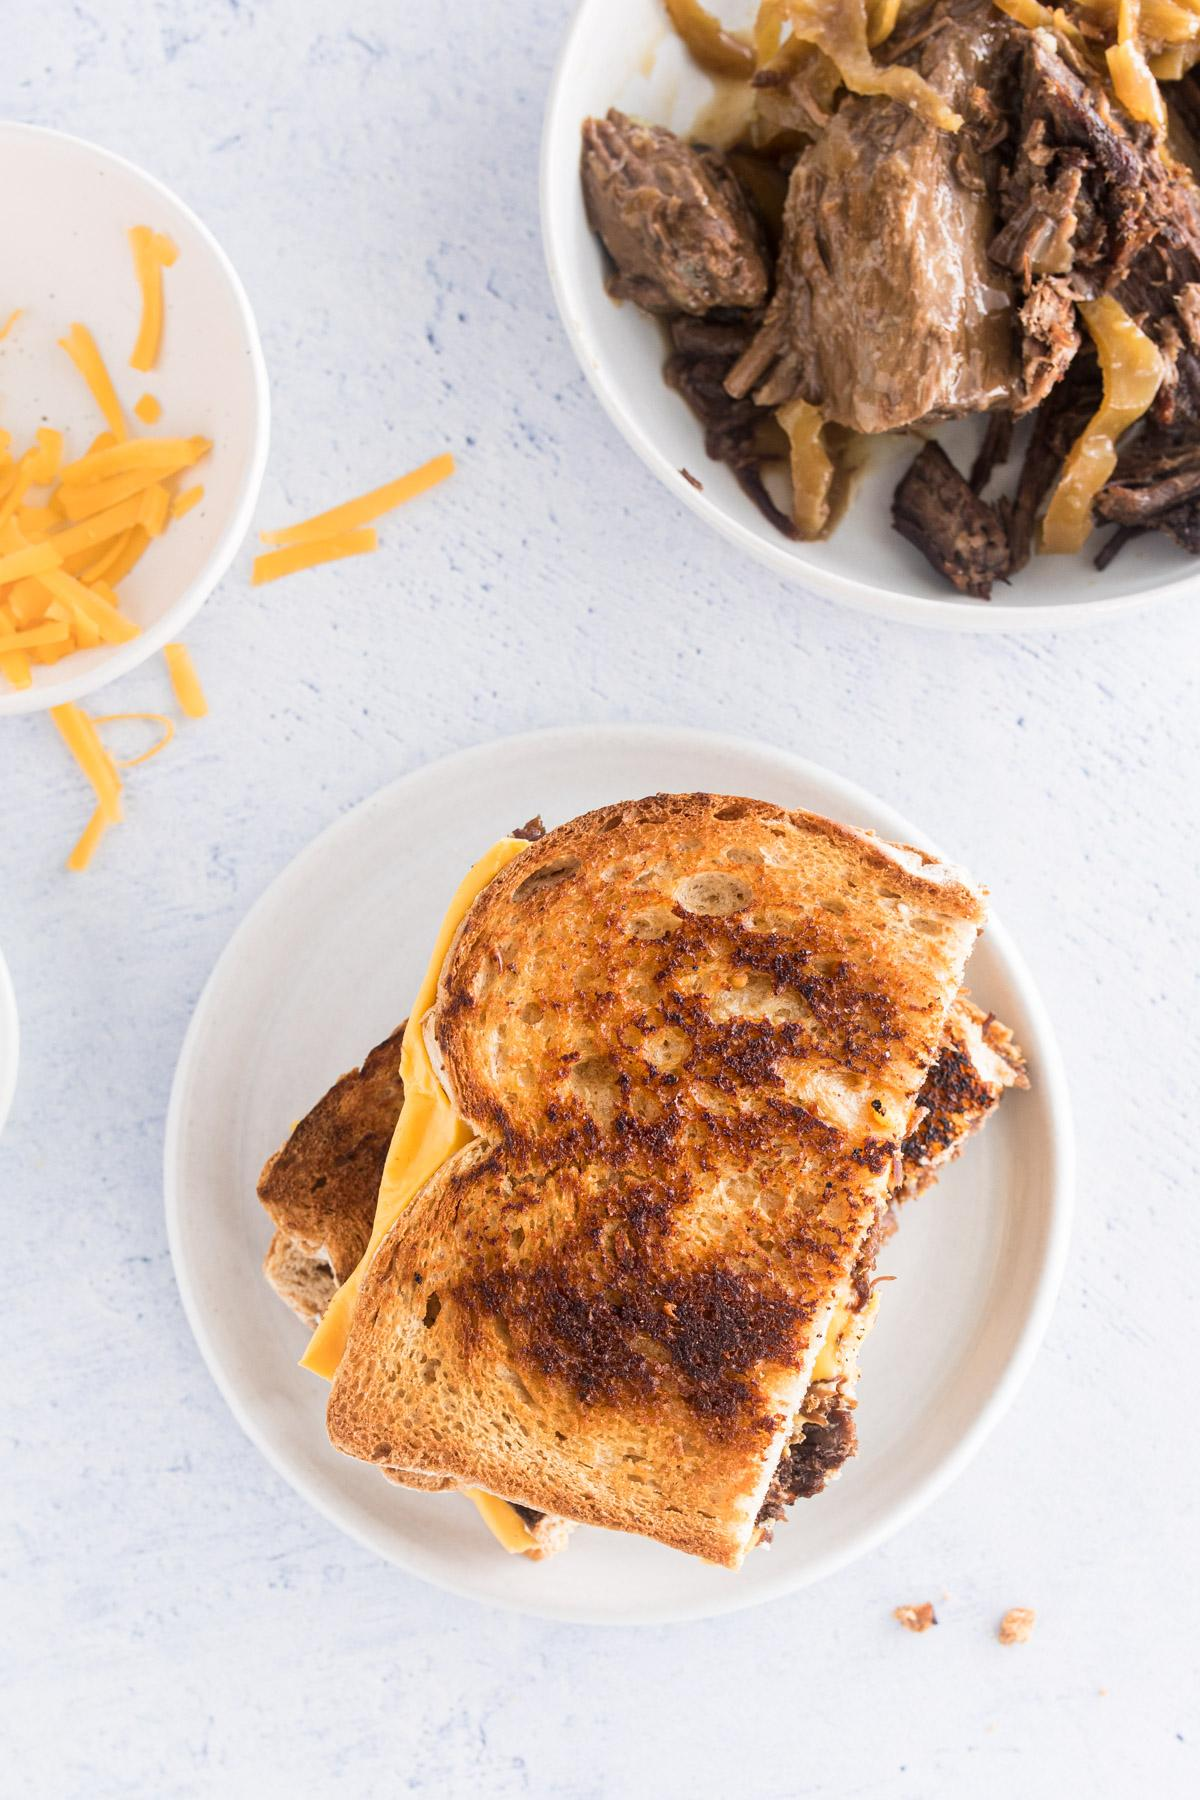 brisket grilled cheese on a plate next to brisket and cheese in bowls